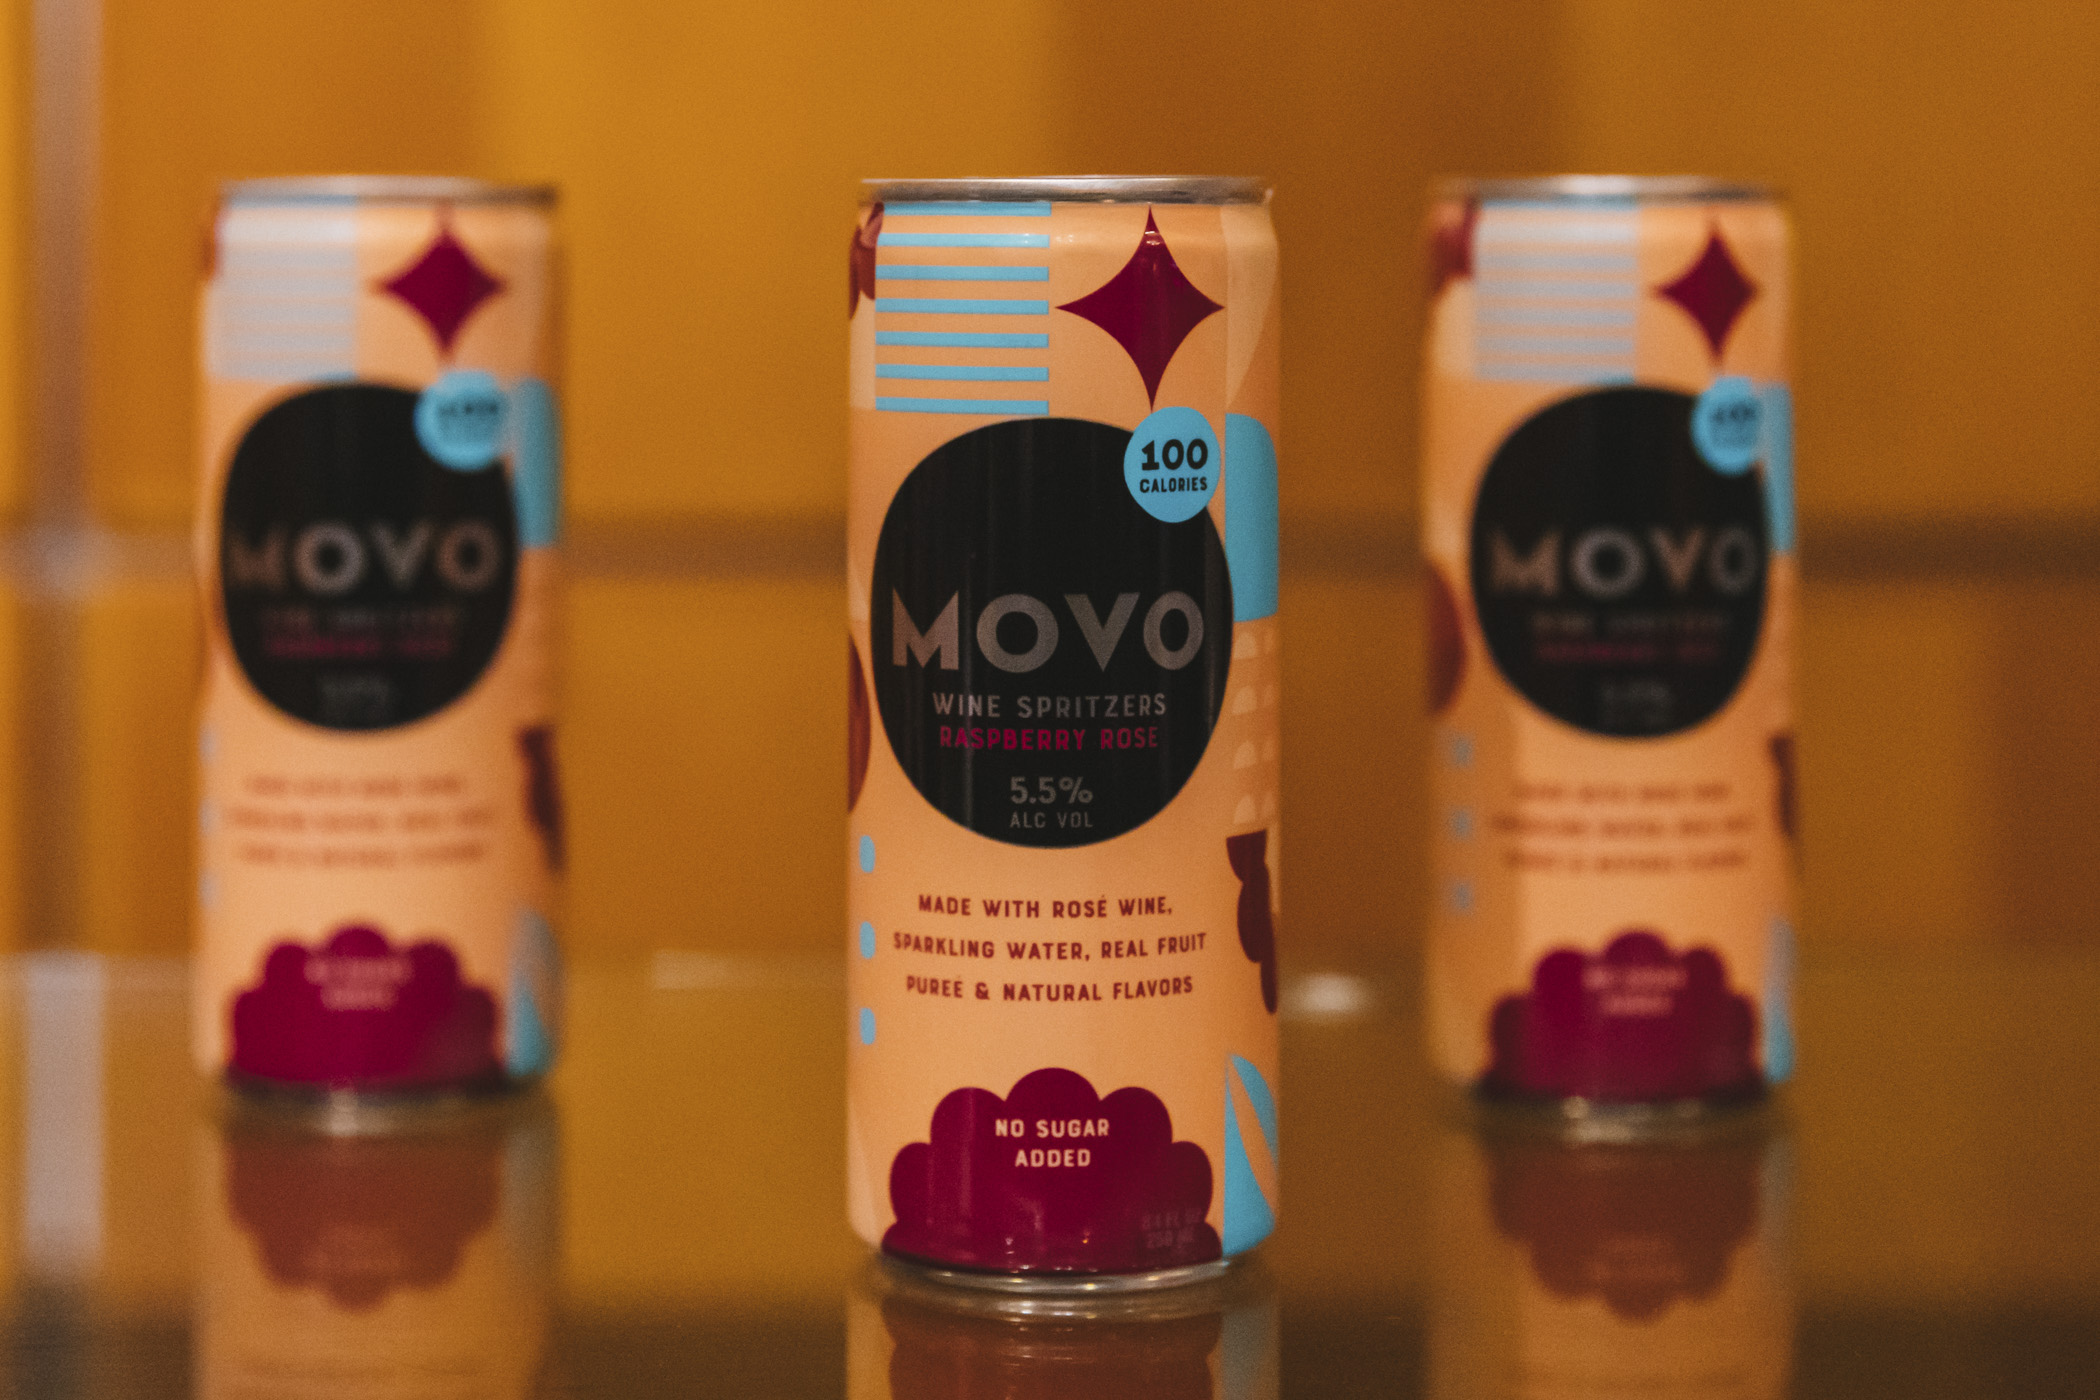 Movo Wine Spritzers. We snuck in a little preview of the beer, wine and spirits offerings for the 2020 Seattle Mariners season at T-Mobile Park! Home Opener is March 26 at 1:10 p.m. agains the Rangers. Go M's! (Image: Sunita Martini / Seattle Refined)